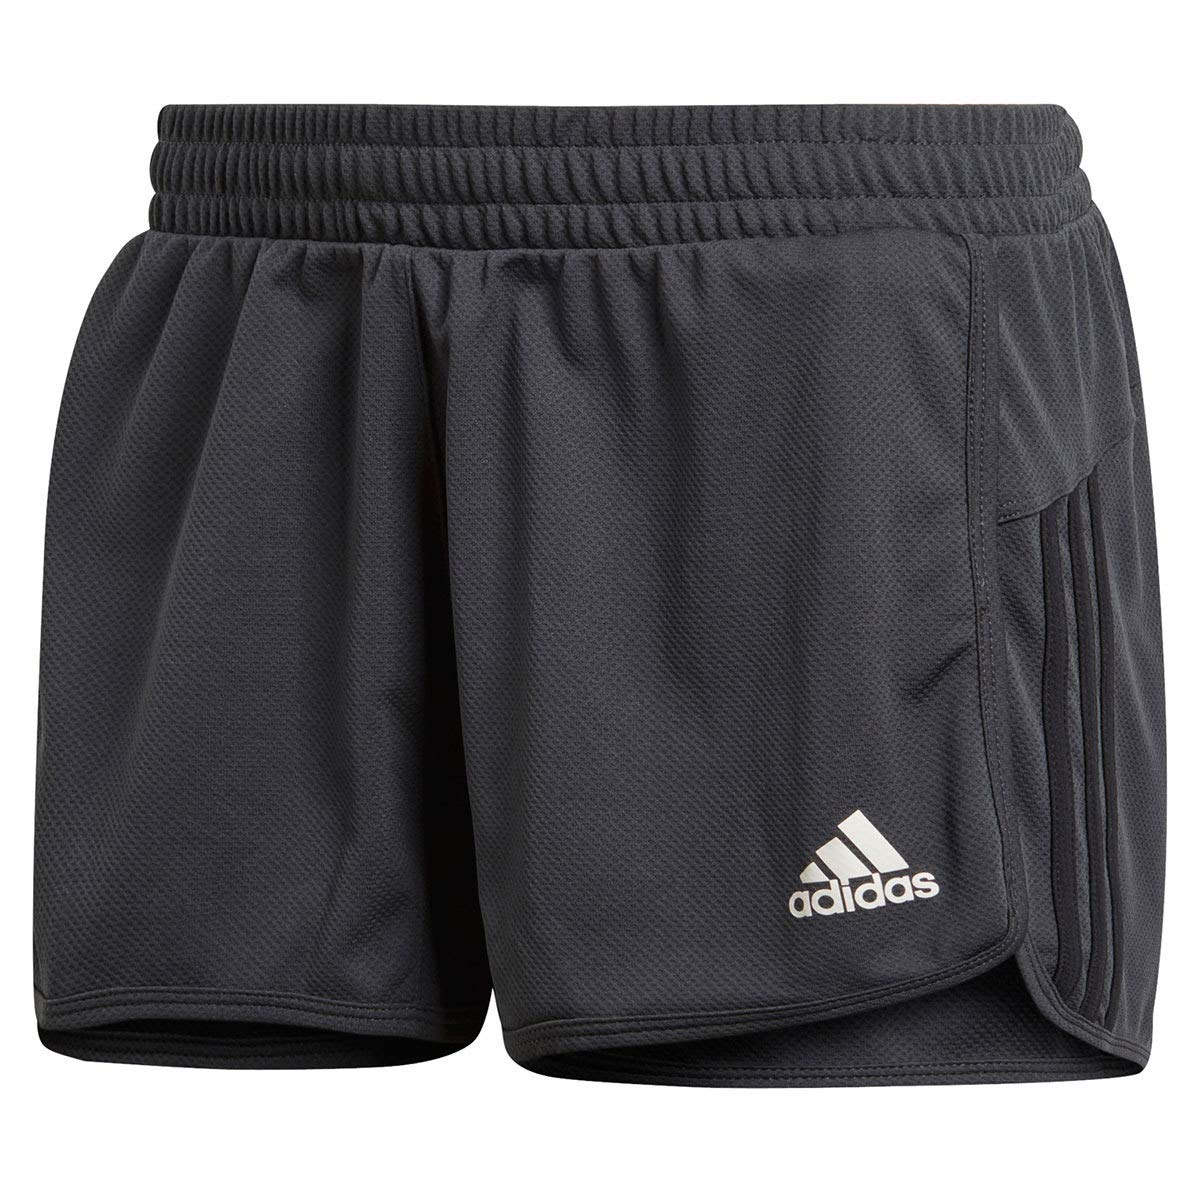 adidas Women's Designed 2 Move Knit Shorts, Carbon/Black, Small by adidas